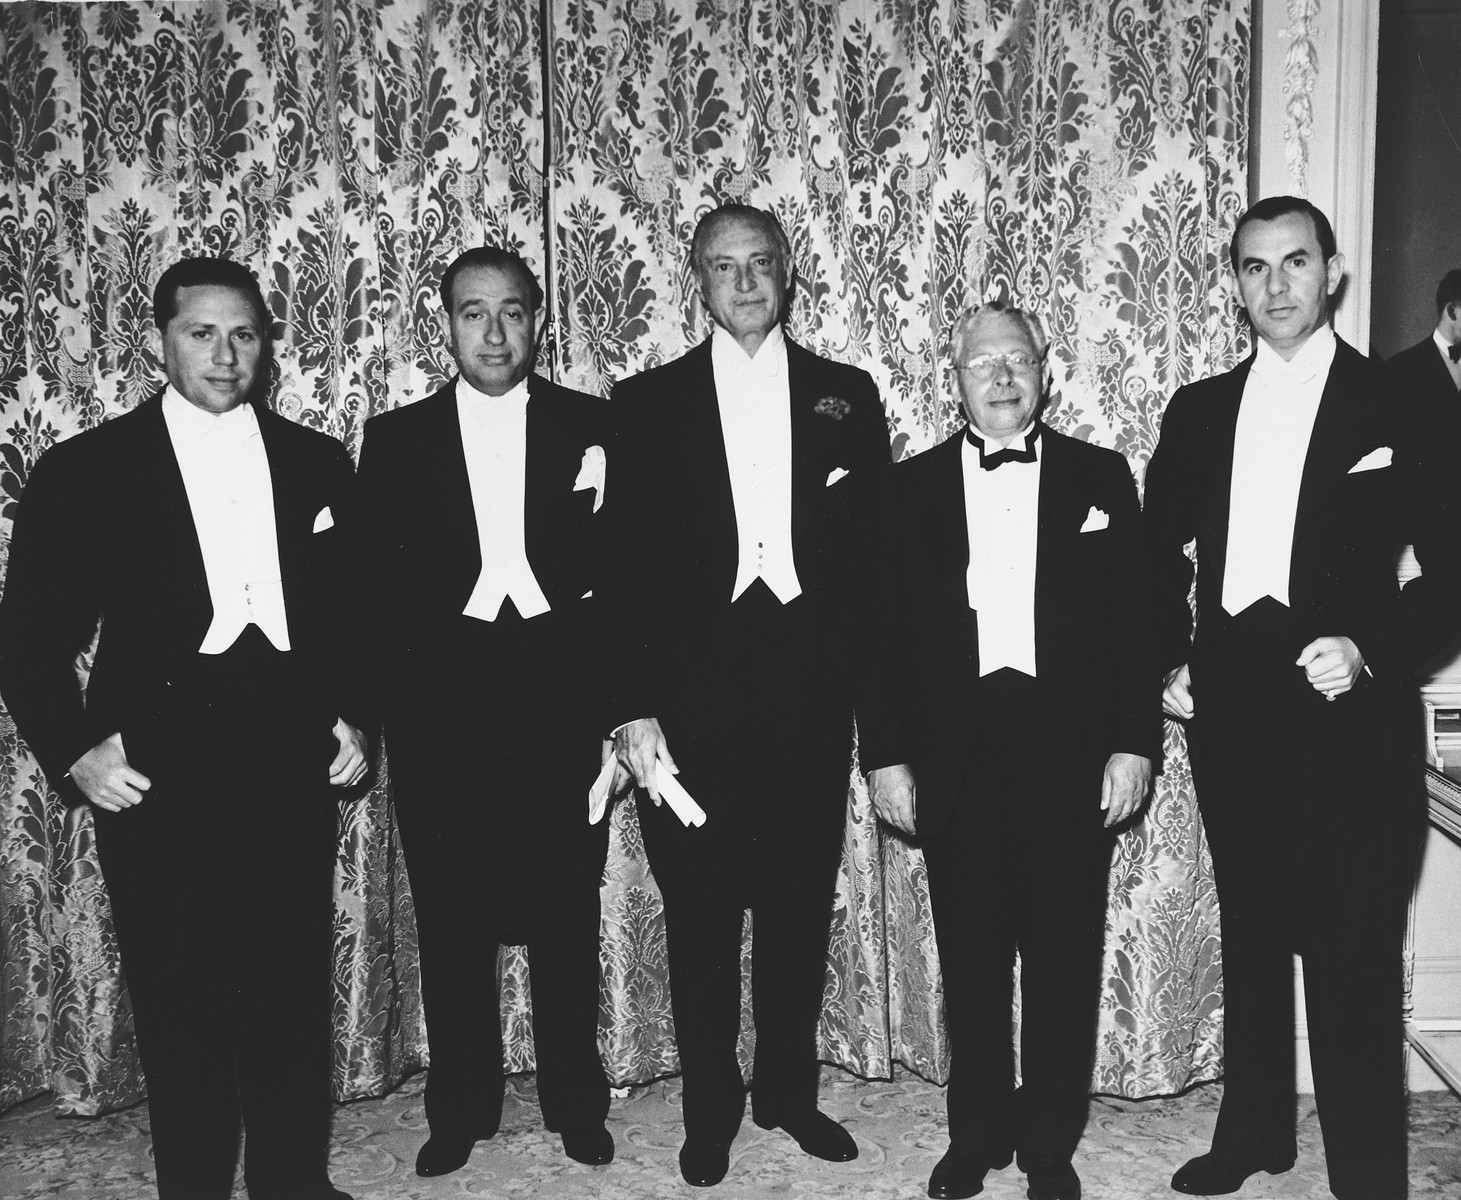 Group portrait of American Zionist leaders and philanthropists.  Pictured from left to right are: Sidney Reisman, Russek, Edwin Goodman, Samuel Strickman and Leonard Ginsberg.